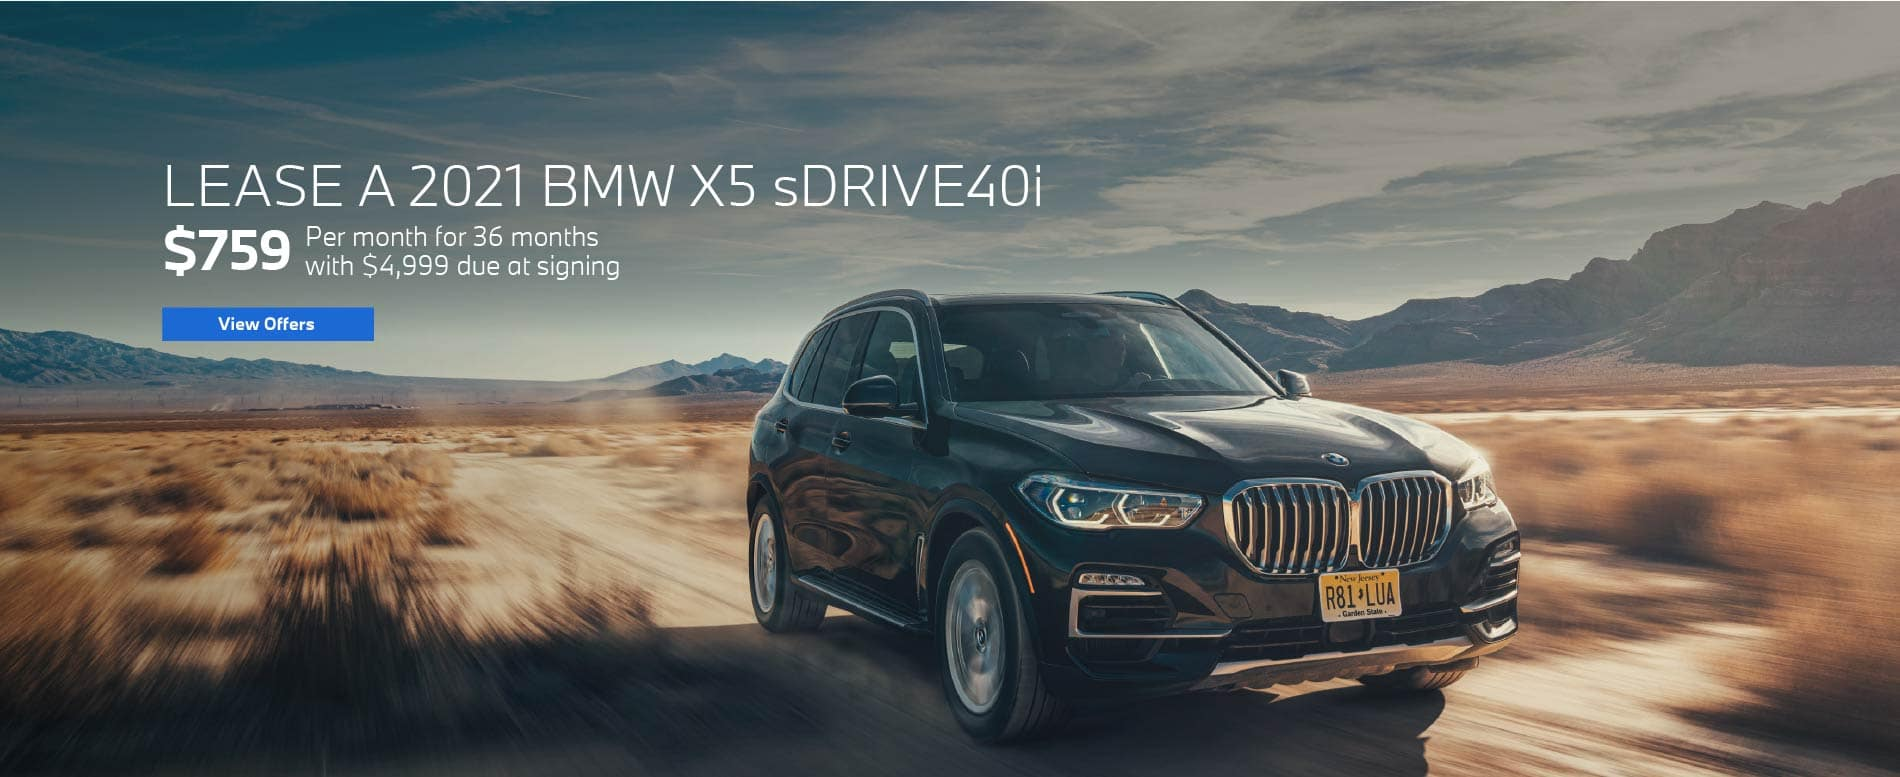 Lease a 2021 BMW X5 for $759 per month - View Offers